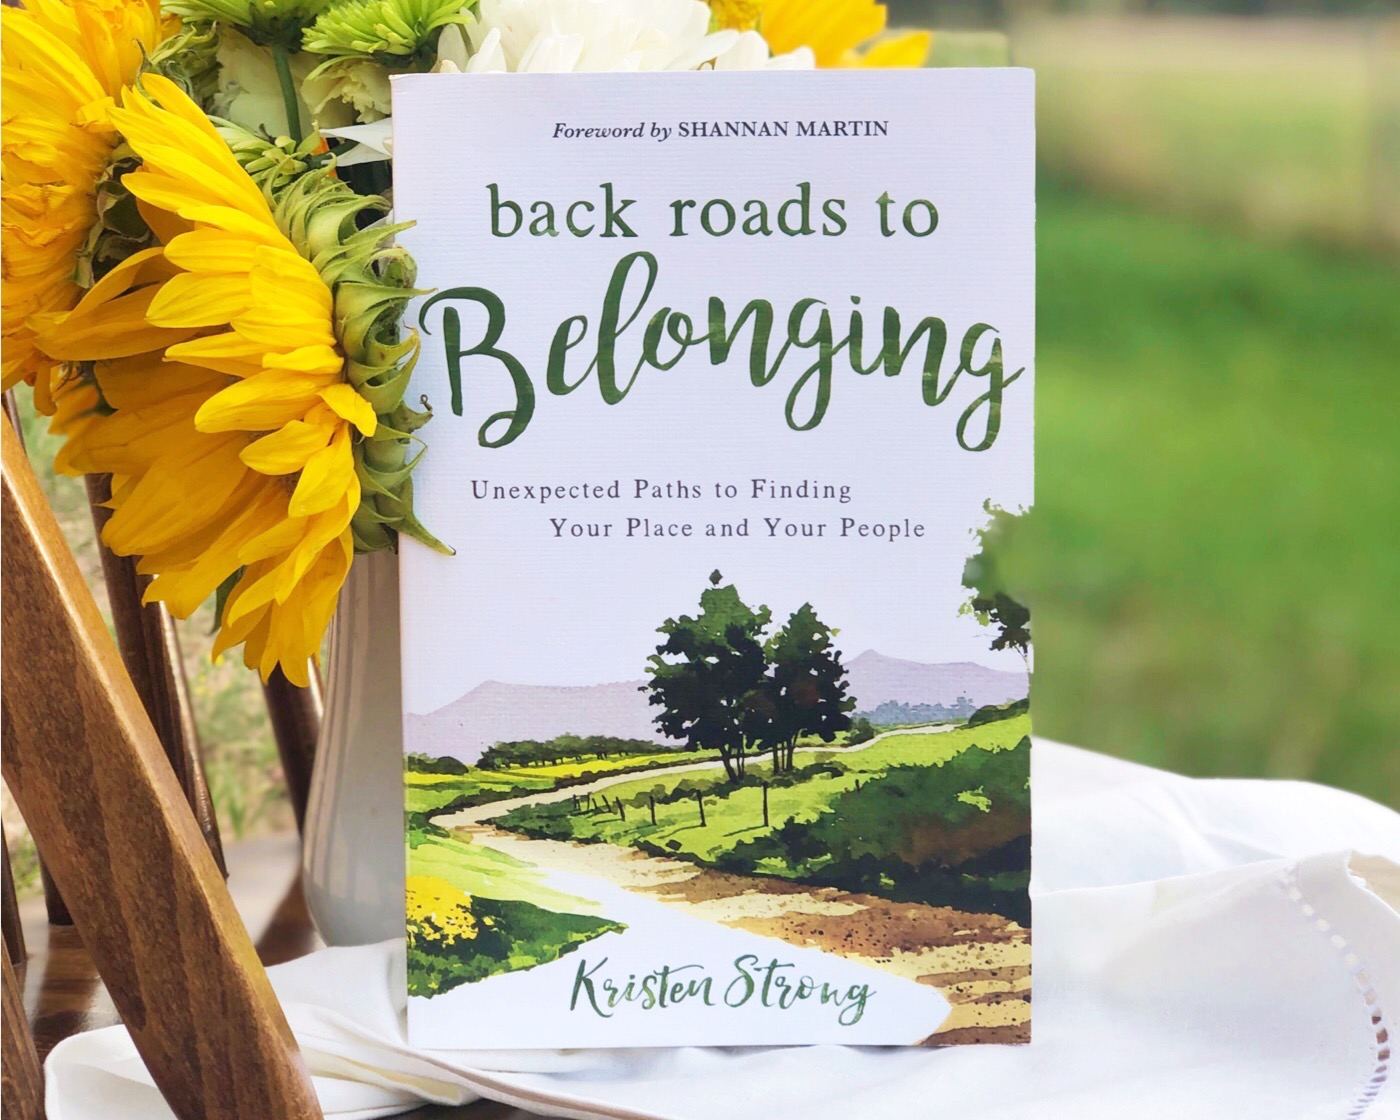 Get Back Roads to Belonging for $1.99!